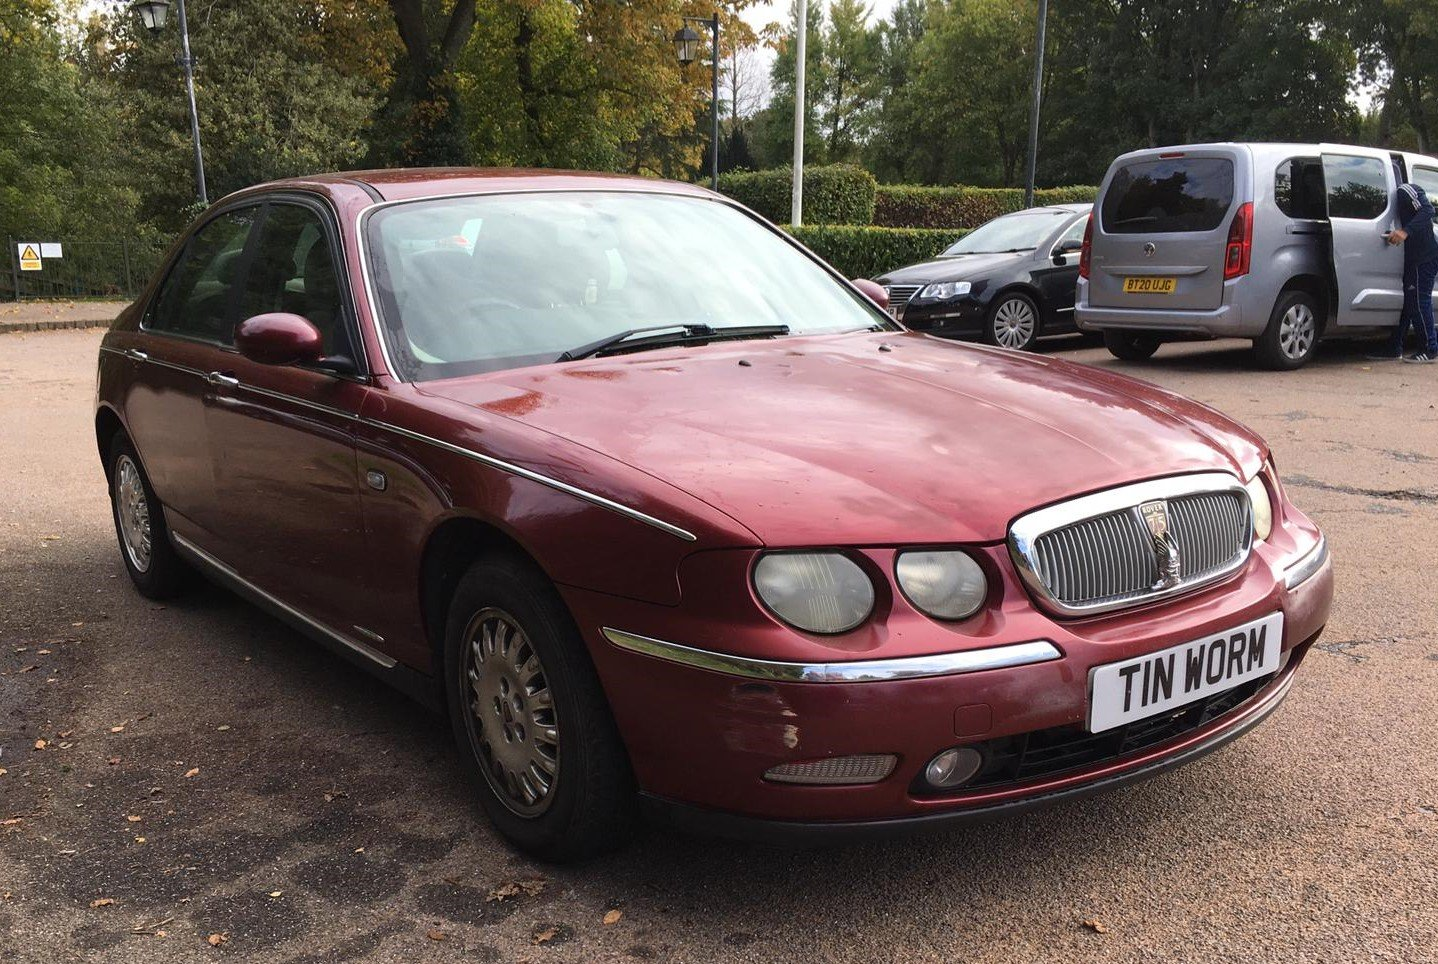 1999 Rover 75 Diesel Club Saloon Manual Gearbox For Sale (picture 2 of 6)